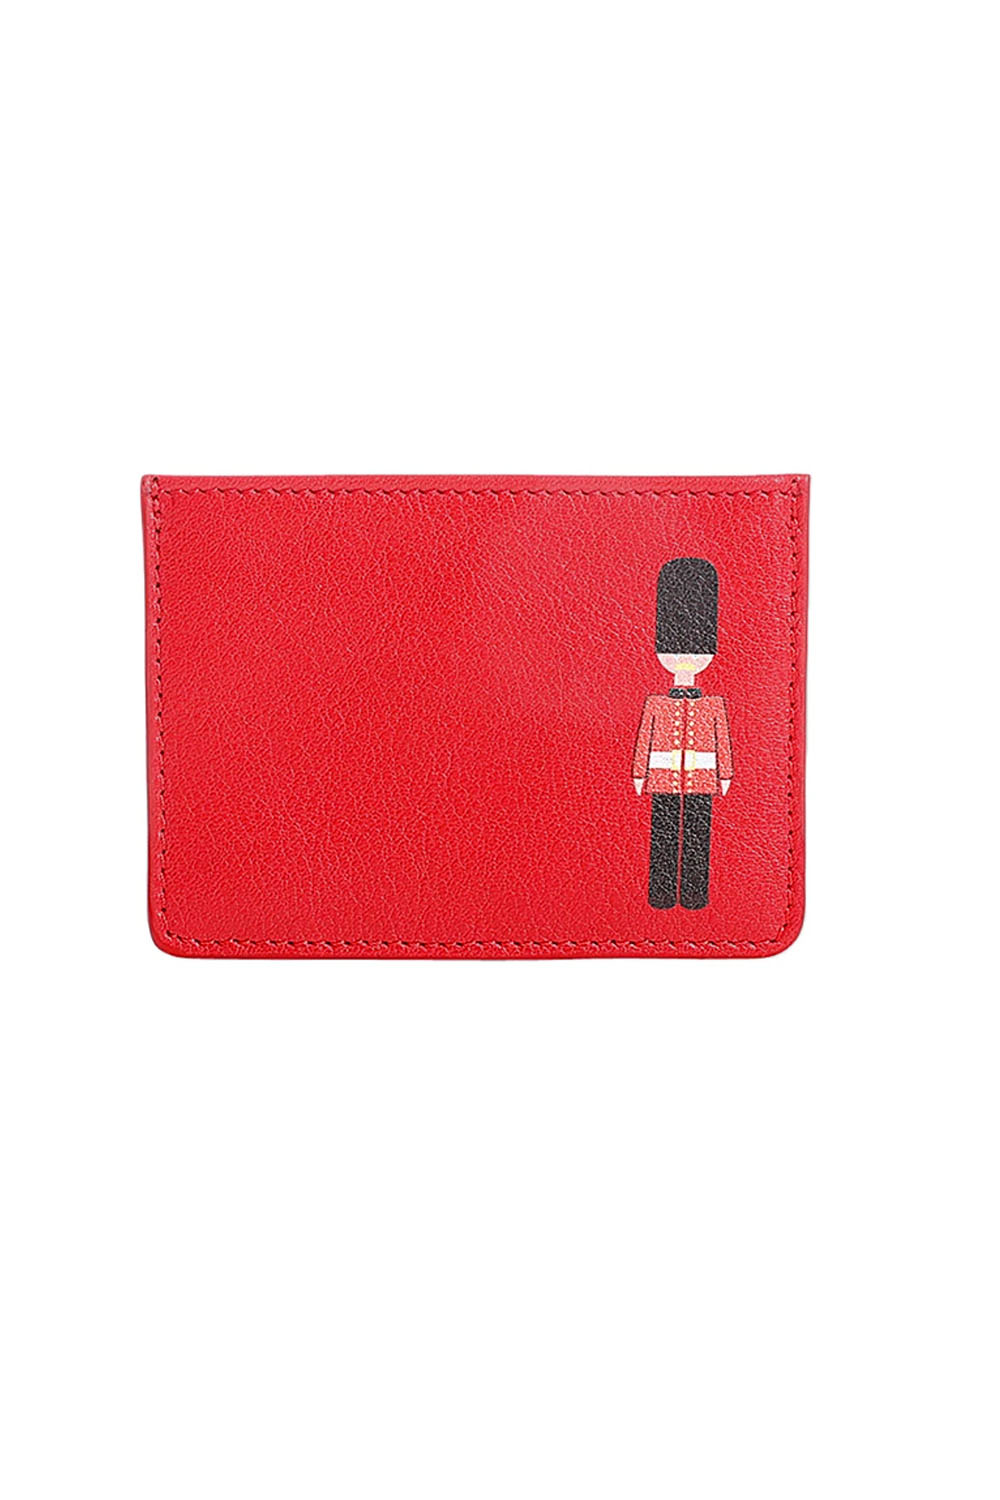 Guard Print Card Holder